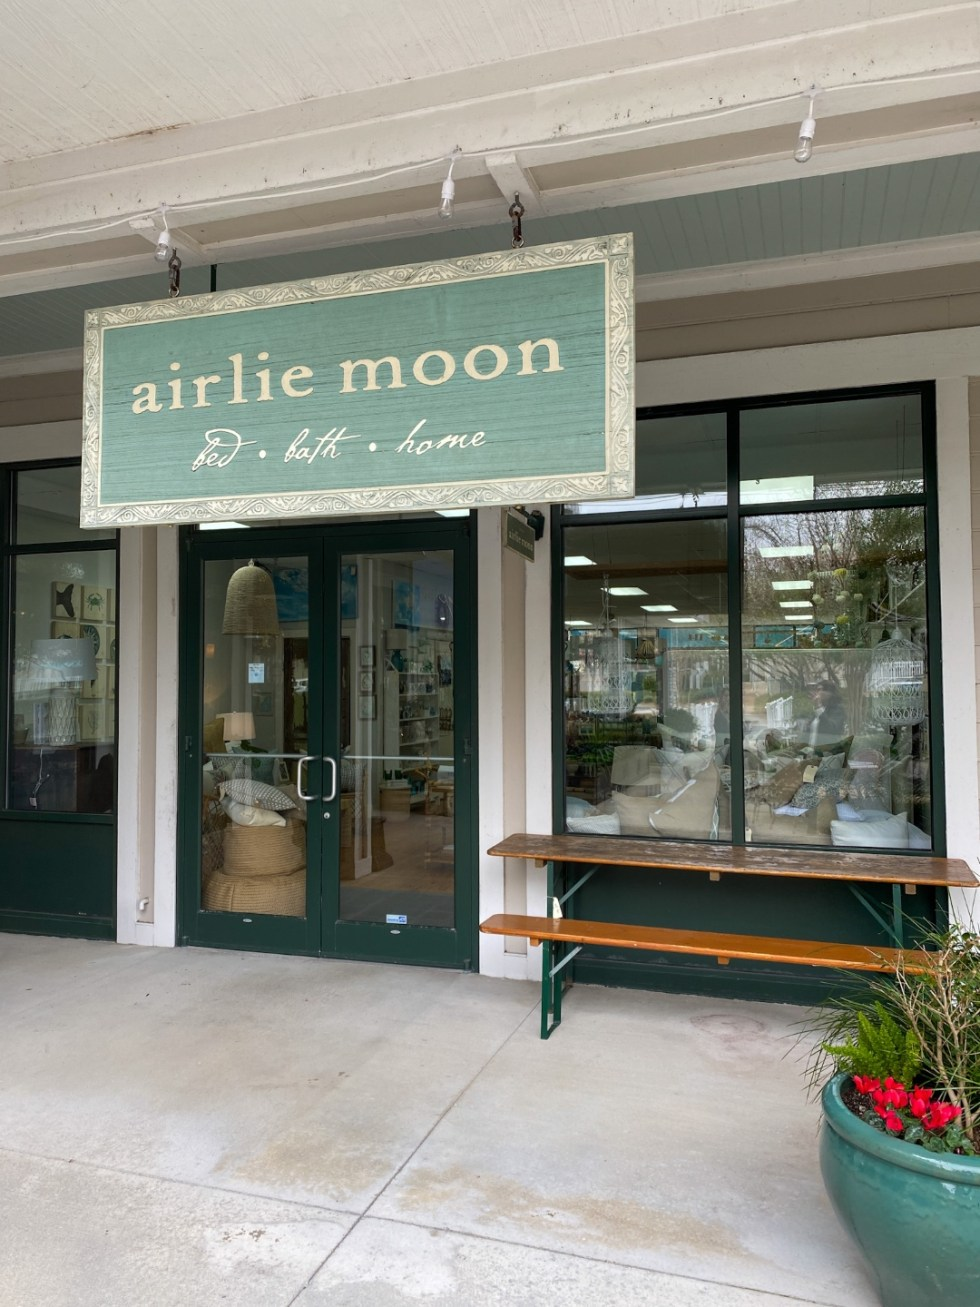 A Spring Weekend in Wilmington, NC: the Best Things to Do - I'm Fixin' To - @imfixintoblog |Weekend in Wilmington by popular NC travel blog, I'm Fixin' To: image of Airlie Moon.